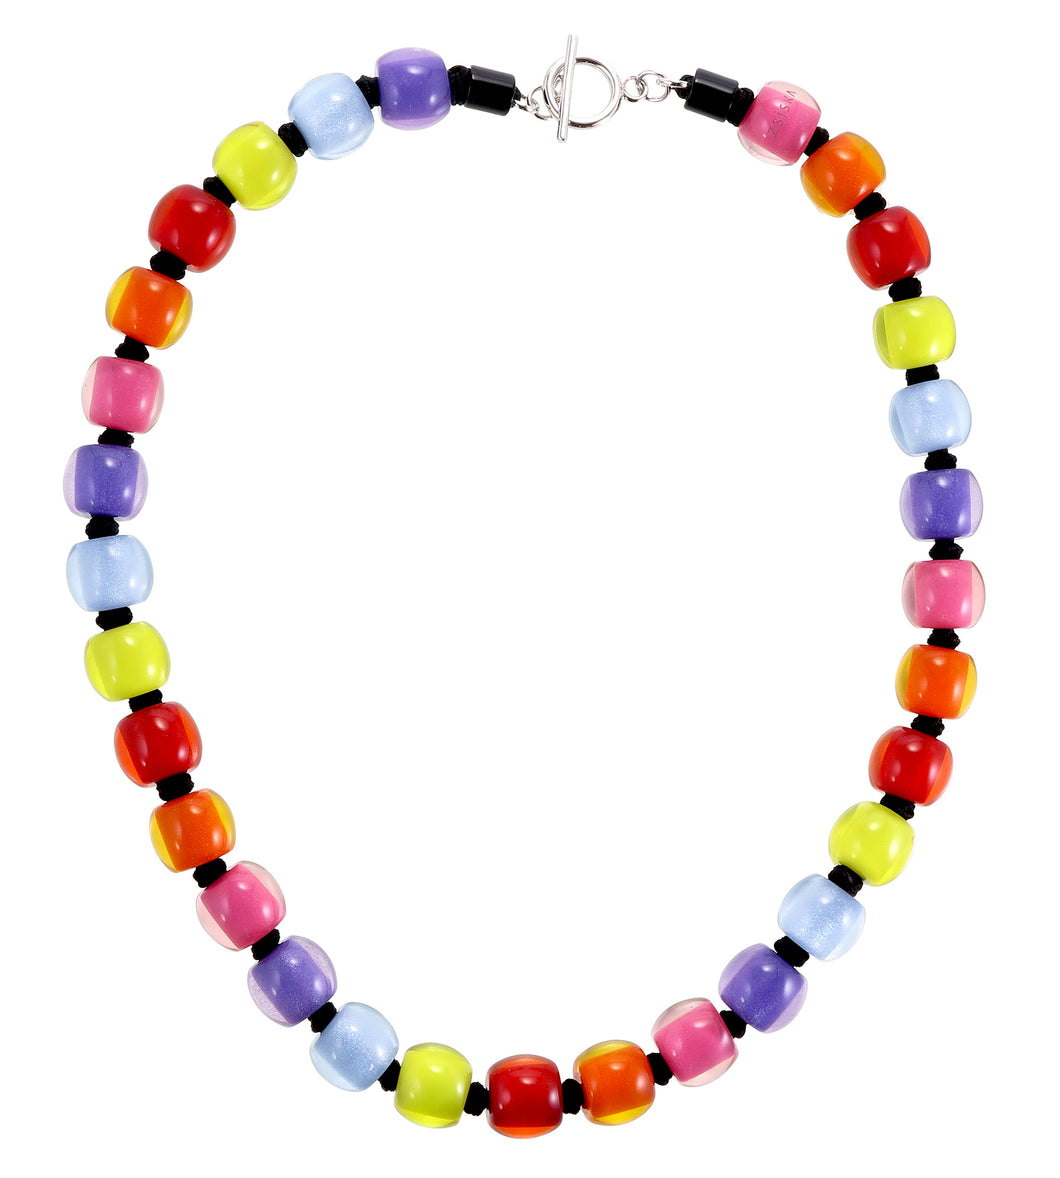 Colourful Beads Necklace - Winter Spectrum - 30 Beads